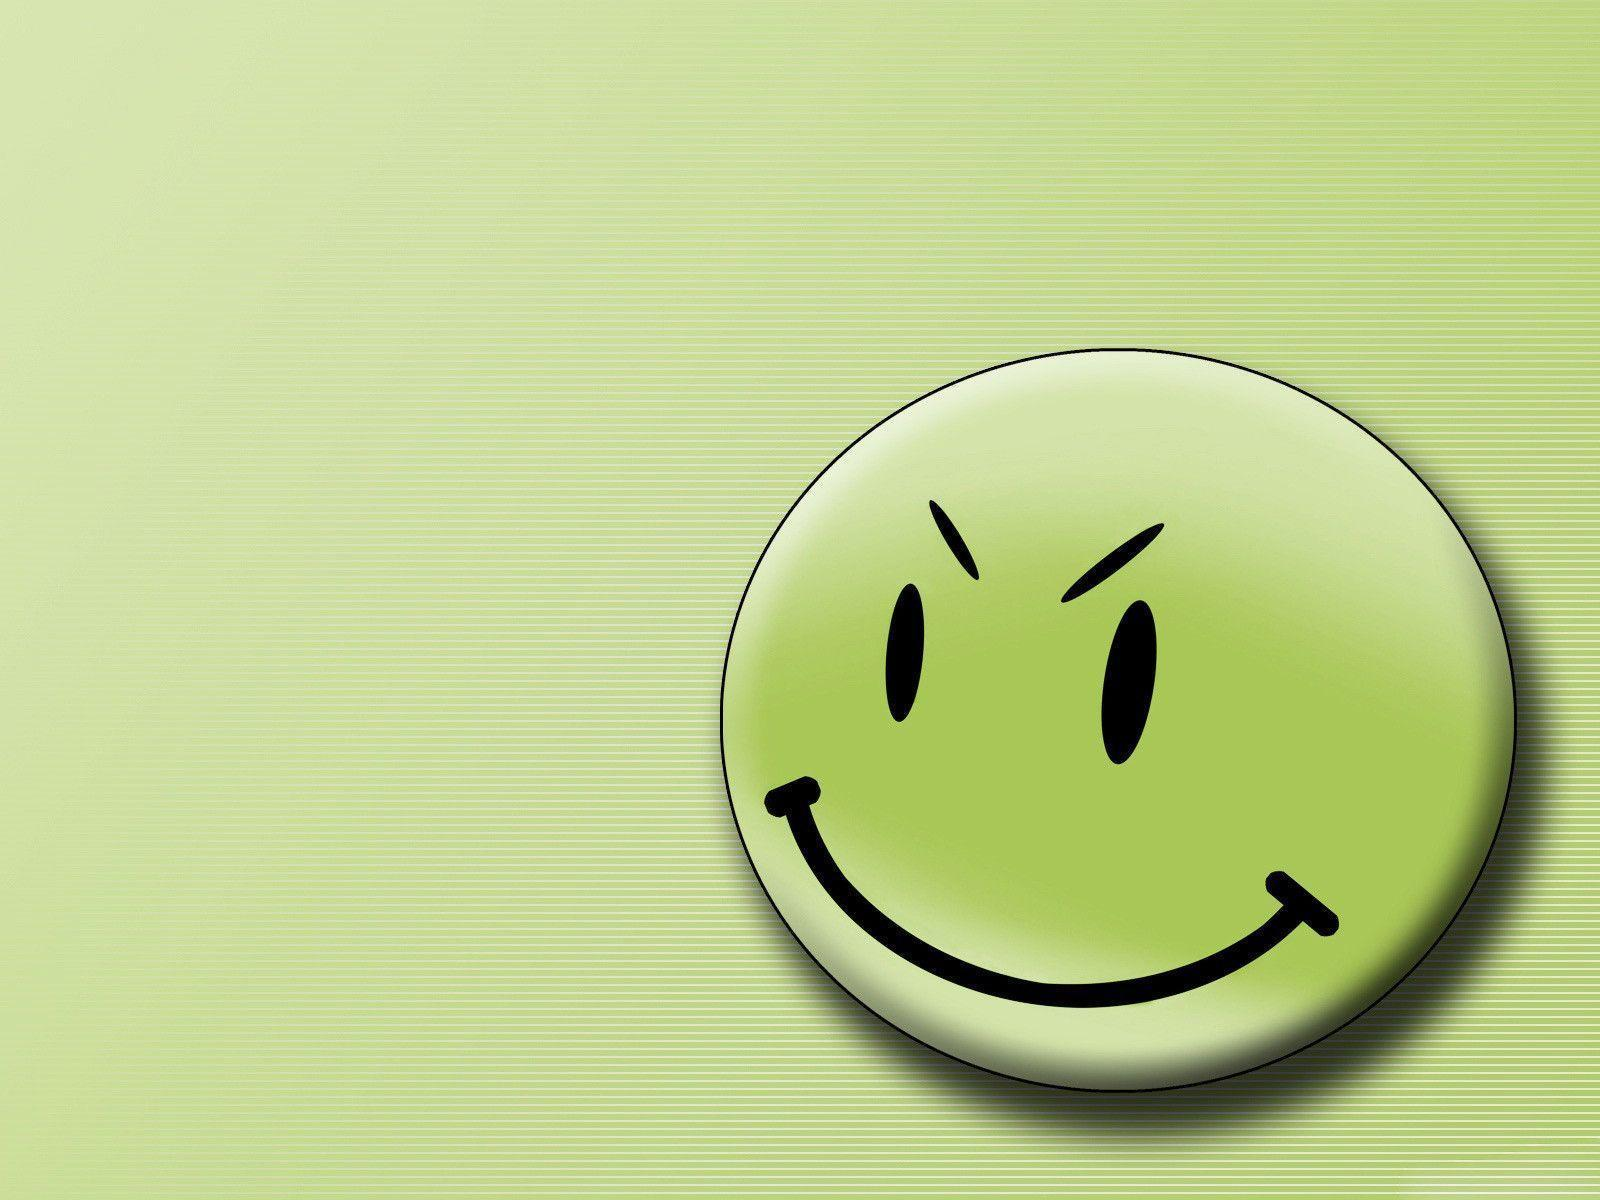 Desktop Wallpapers · Gallery · Computers · Green smiley face